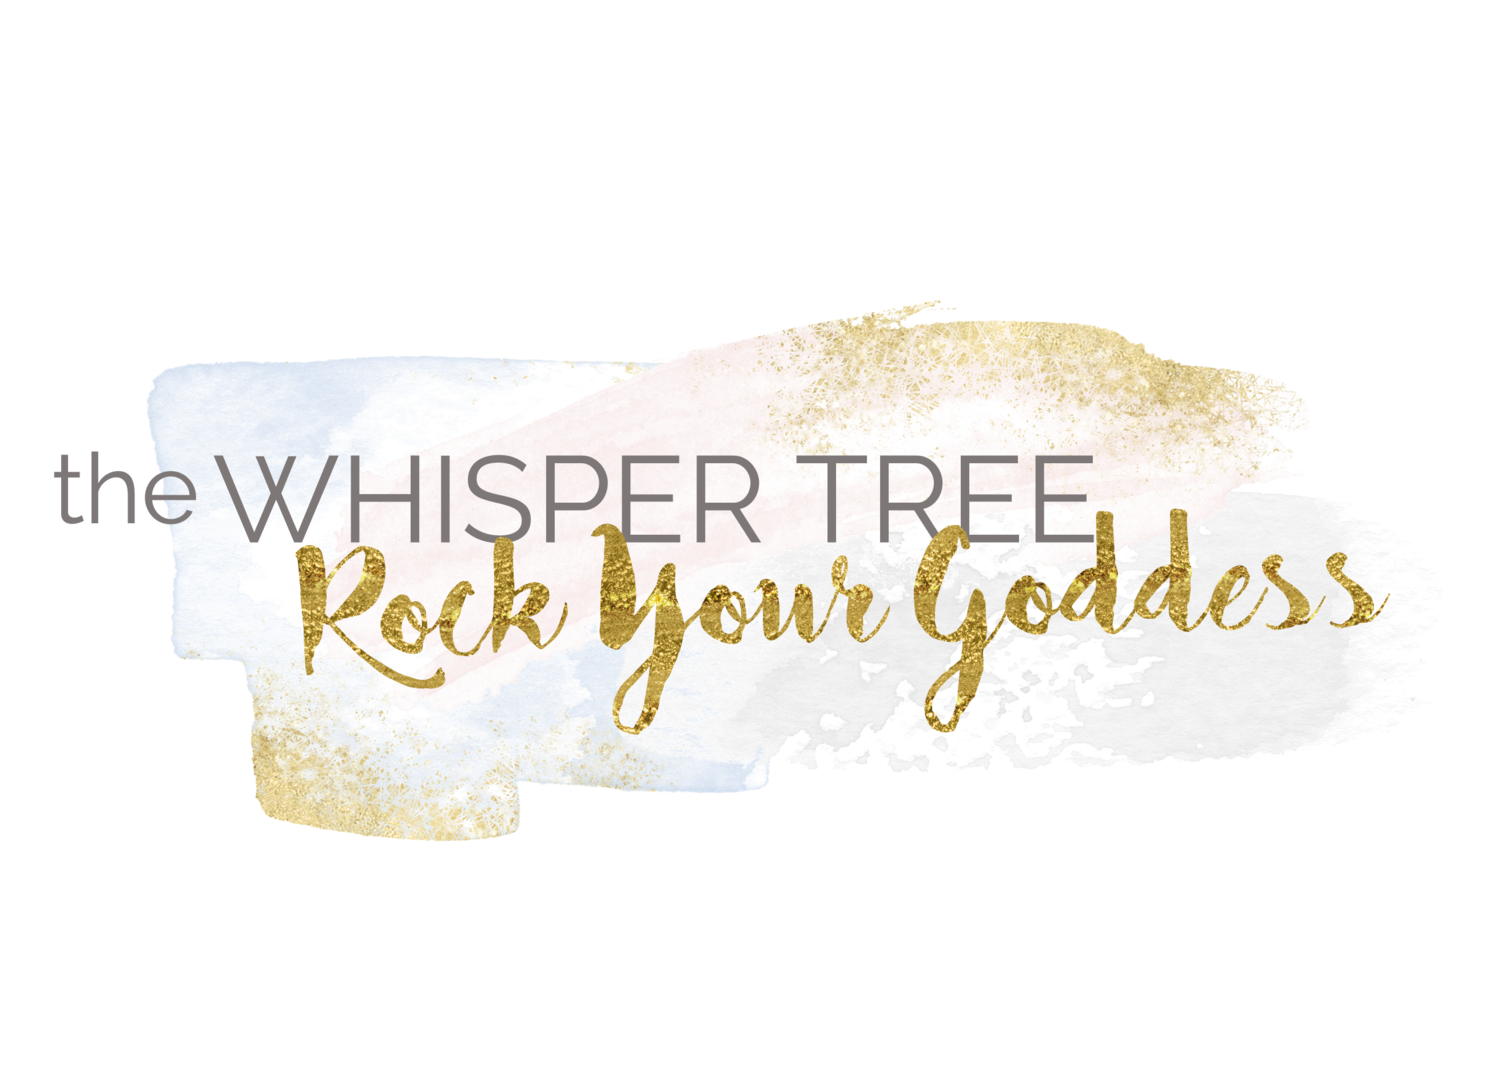 The whisper Tree